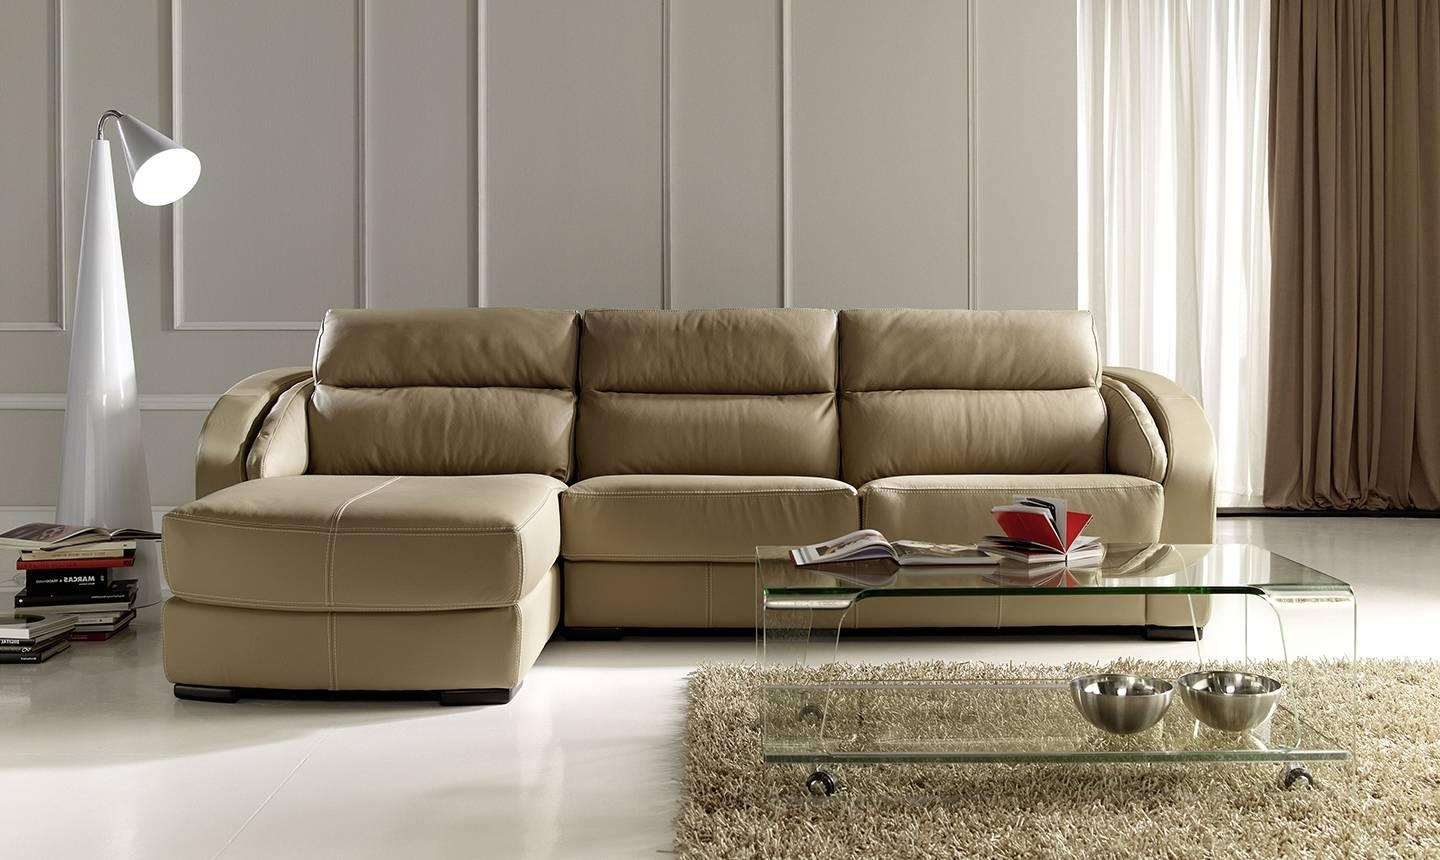 Modern Style Apartment Size Leather Sectional Sofa And Exquisite Pertaining To Widely Used Virginia Sectional Sofas (View 5 of 20)